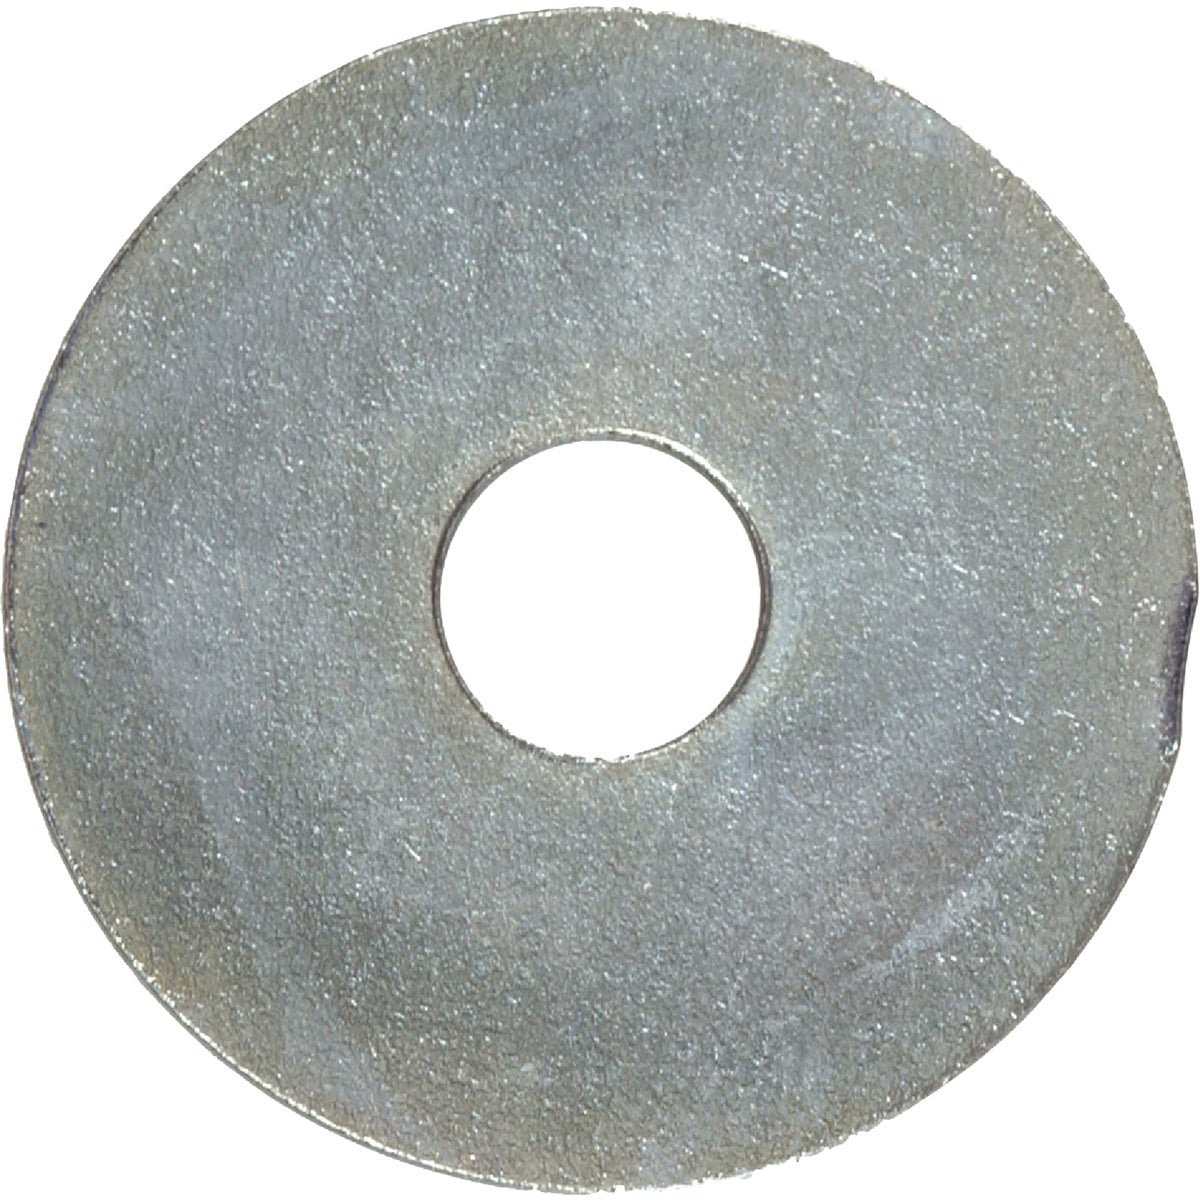 3/8X1-1/4 Fender Washer